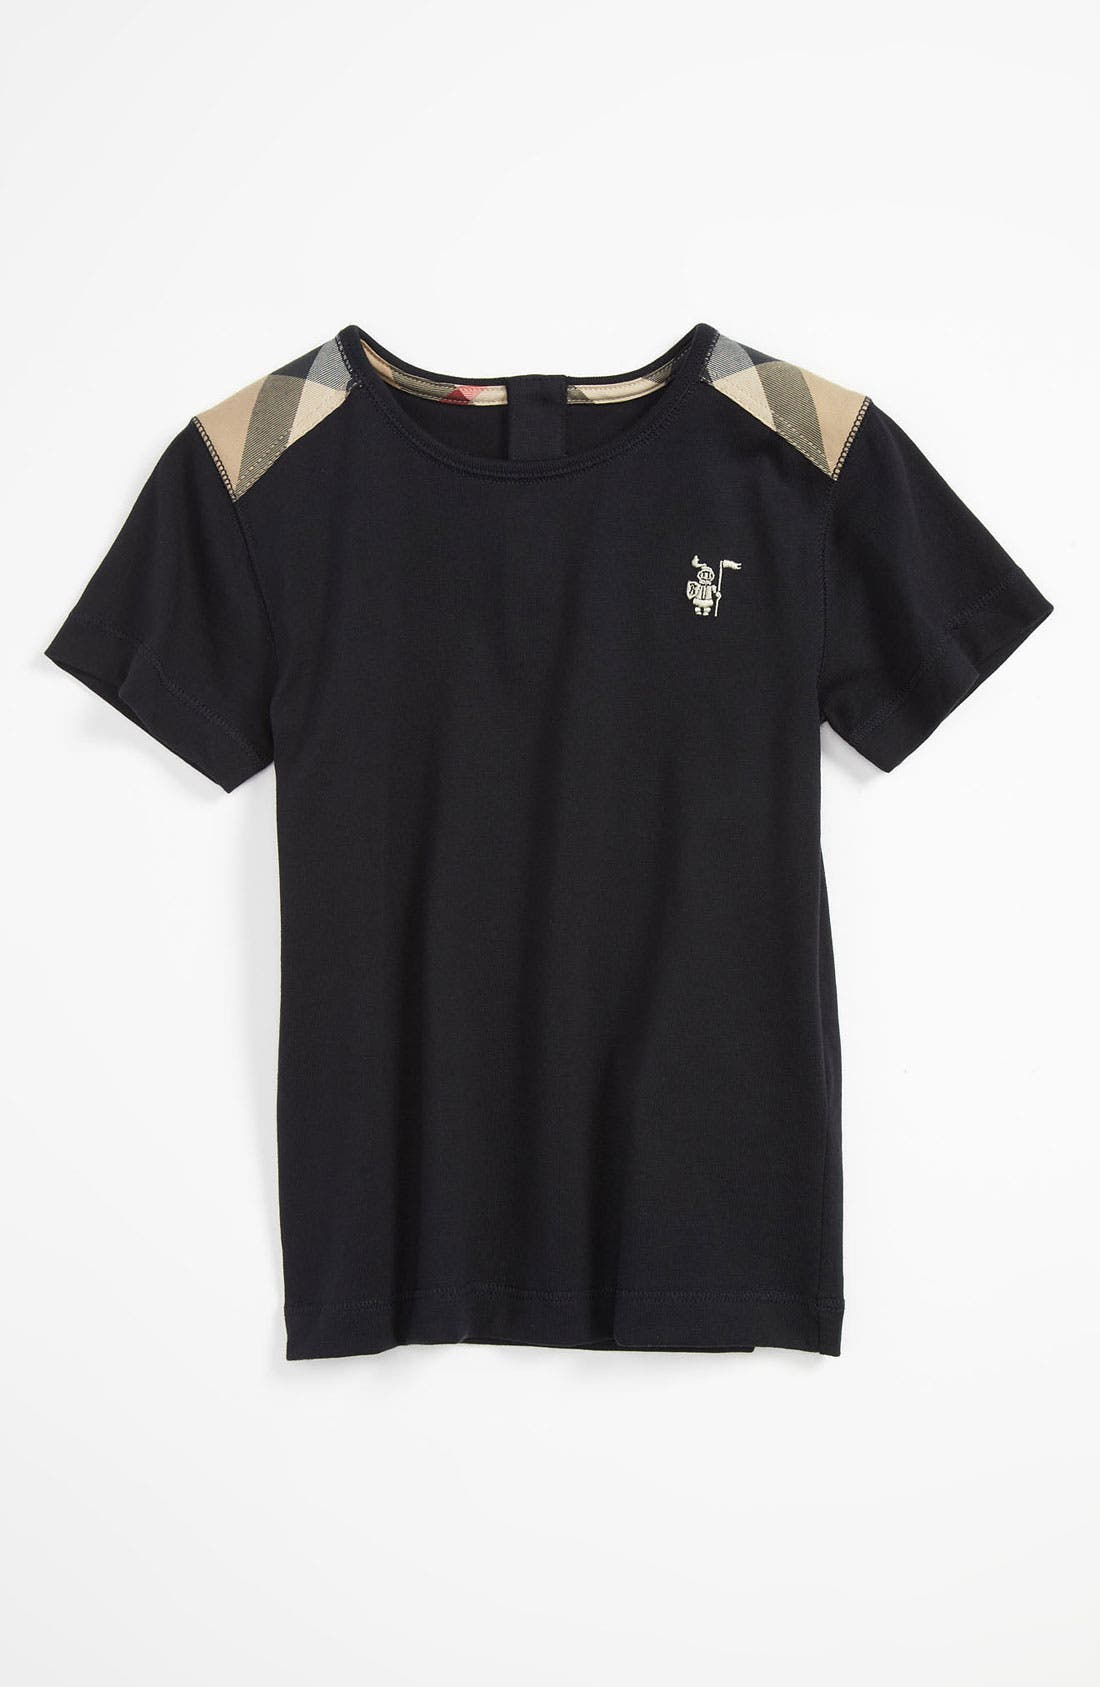 Alternate Image 1 Selected - Burberry Shoulder Patch T-Shirt (Toddler)